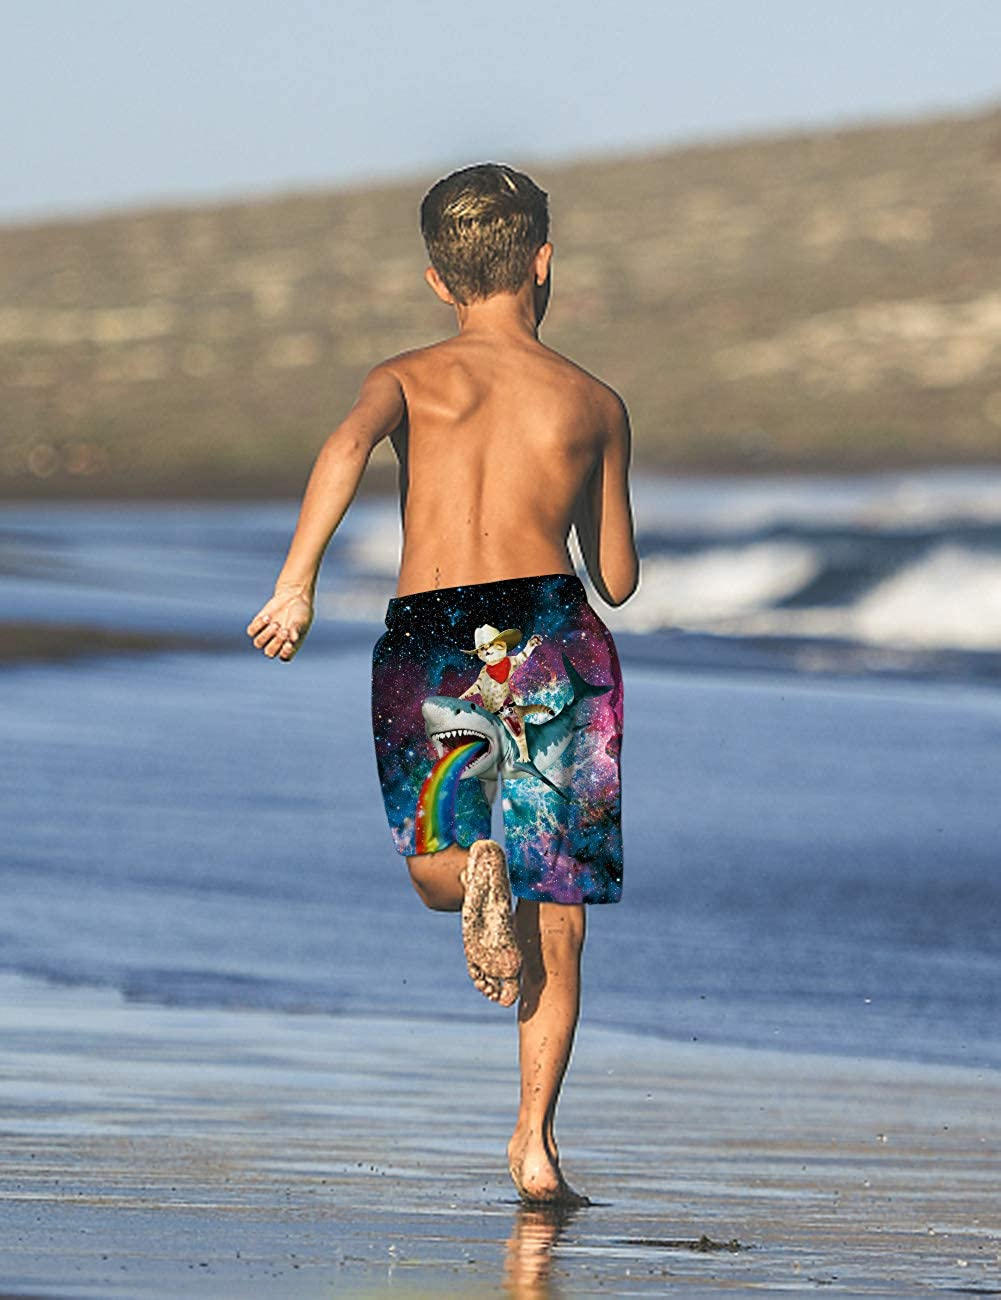 ALISISTER Boys Swim Trunks Toddler Beach Shorts Boardshorts with Pockets Elastic Drawstring Quick Dry 5-14 Years Old